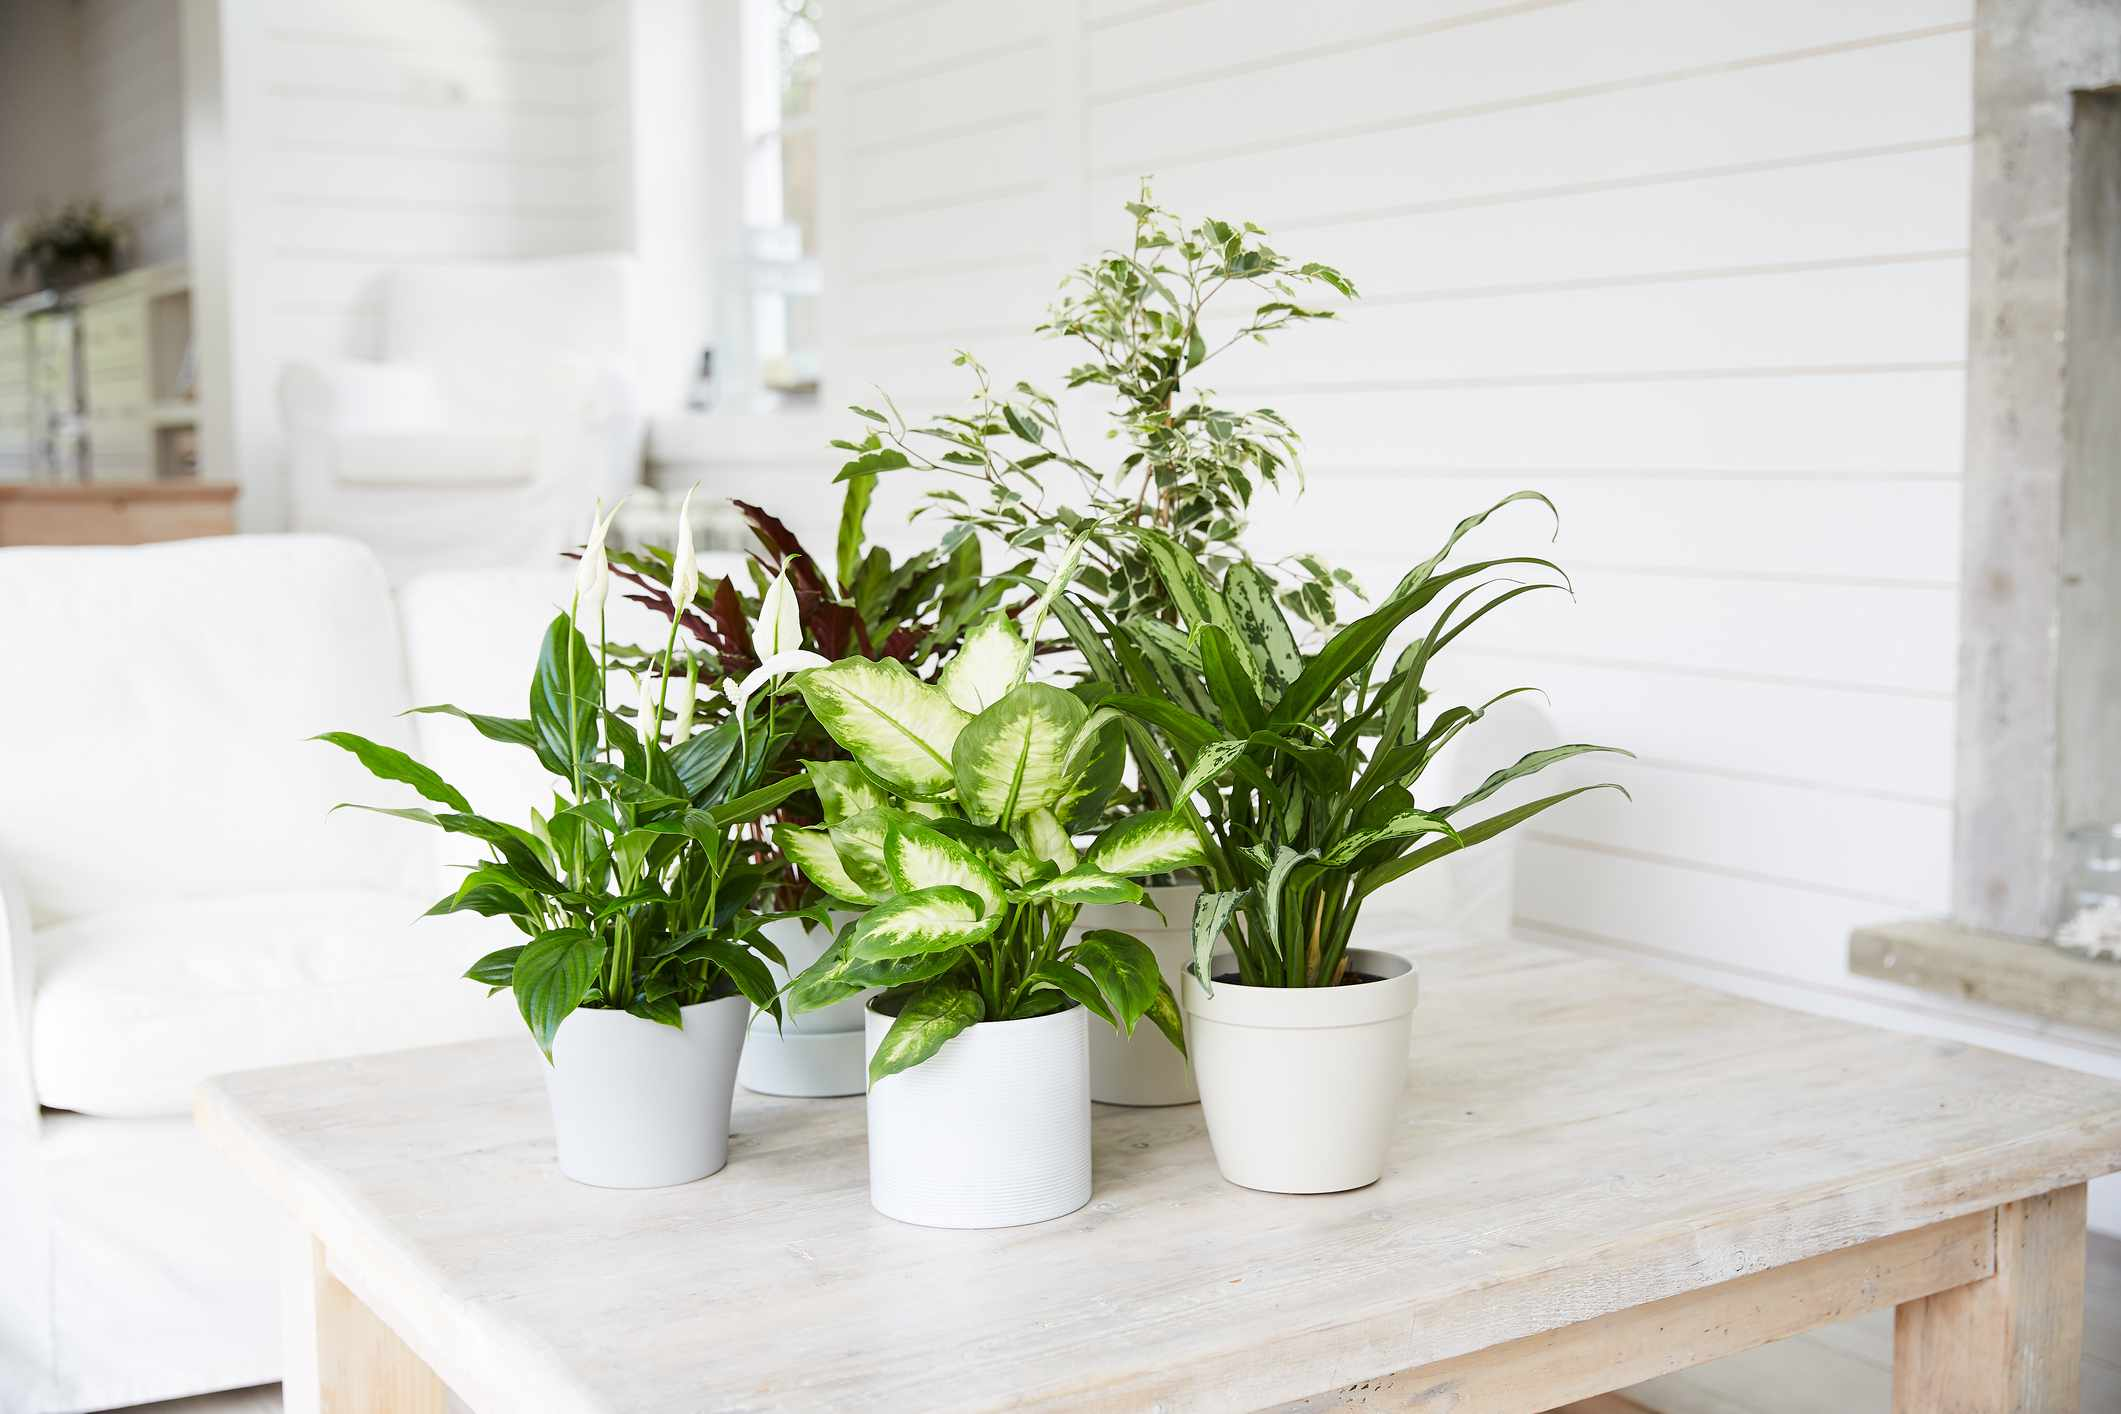 How to Care for Your Prayer Plant